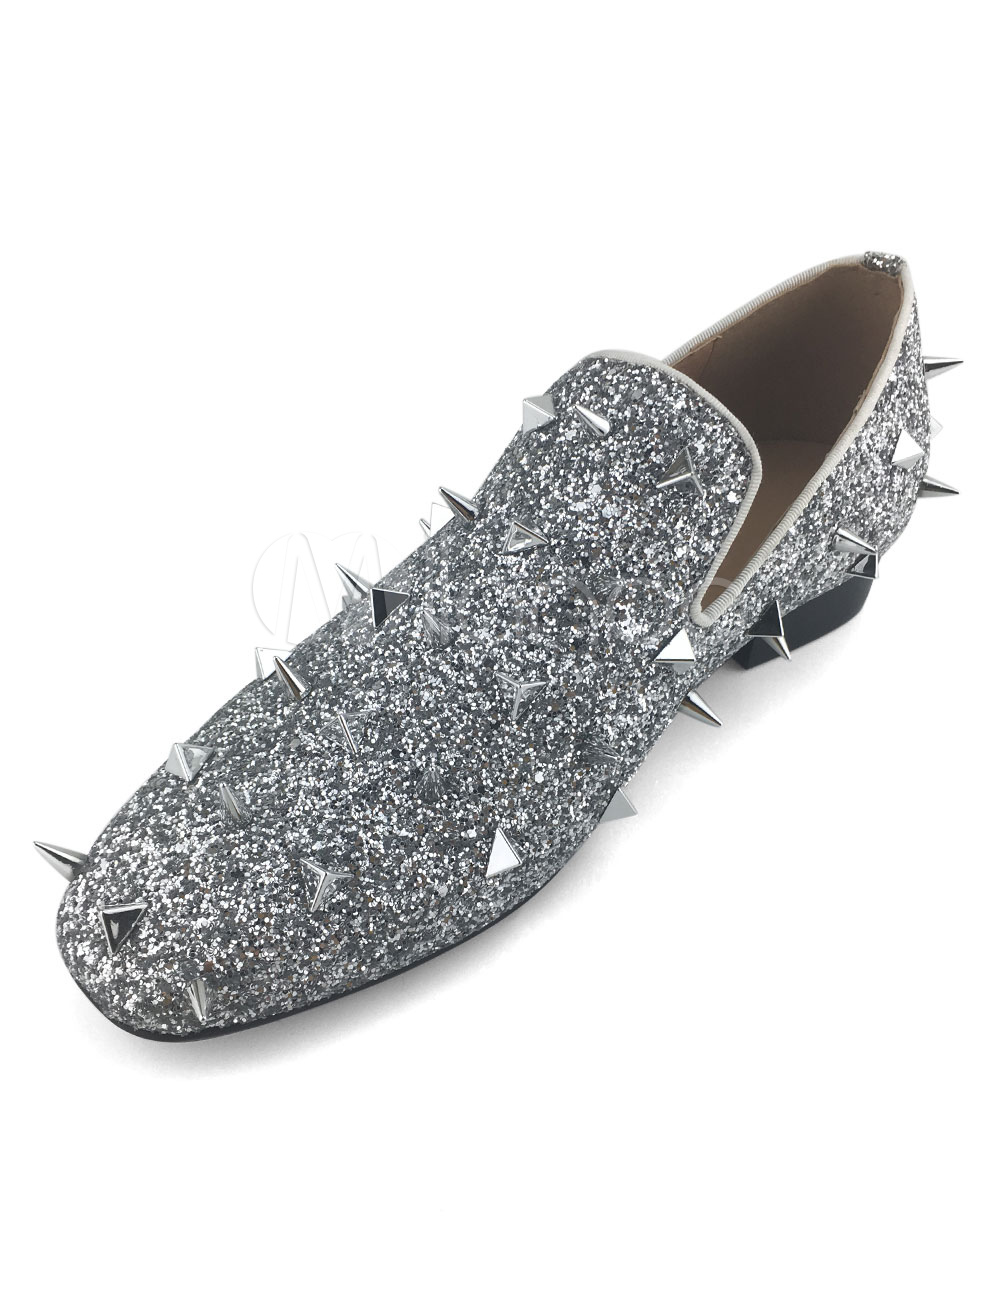 Buy Silver Spike Loafers 2018 Men Shoes Sequined Metallic Round Toe Slip On Shoes for $71.19 in Milanoo store